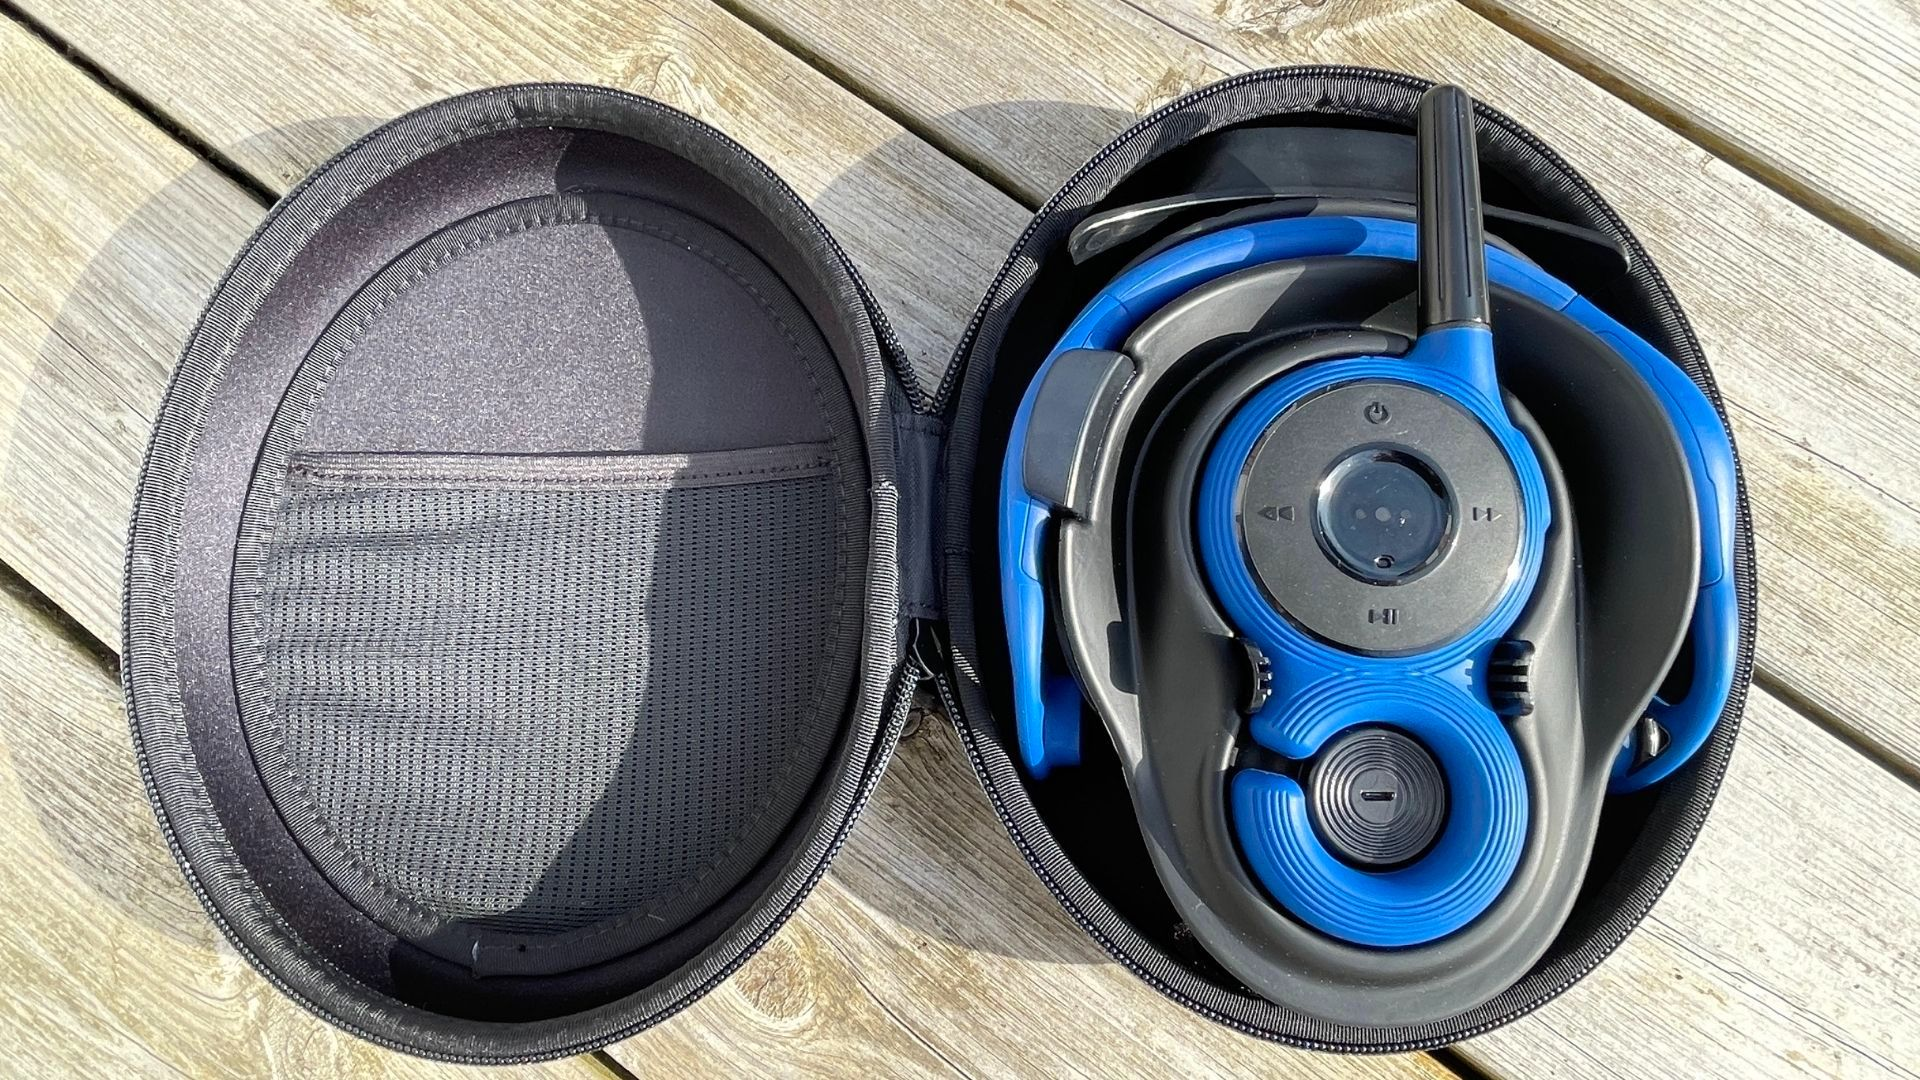 Zygo Solo headset and transmitter in charging case